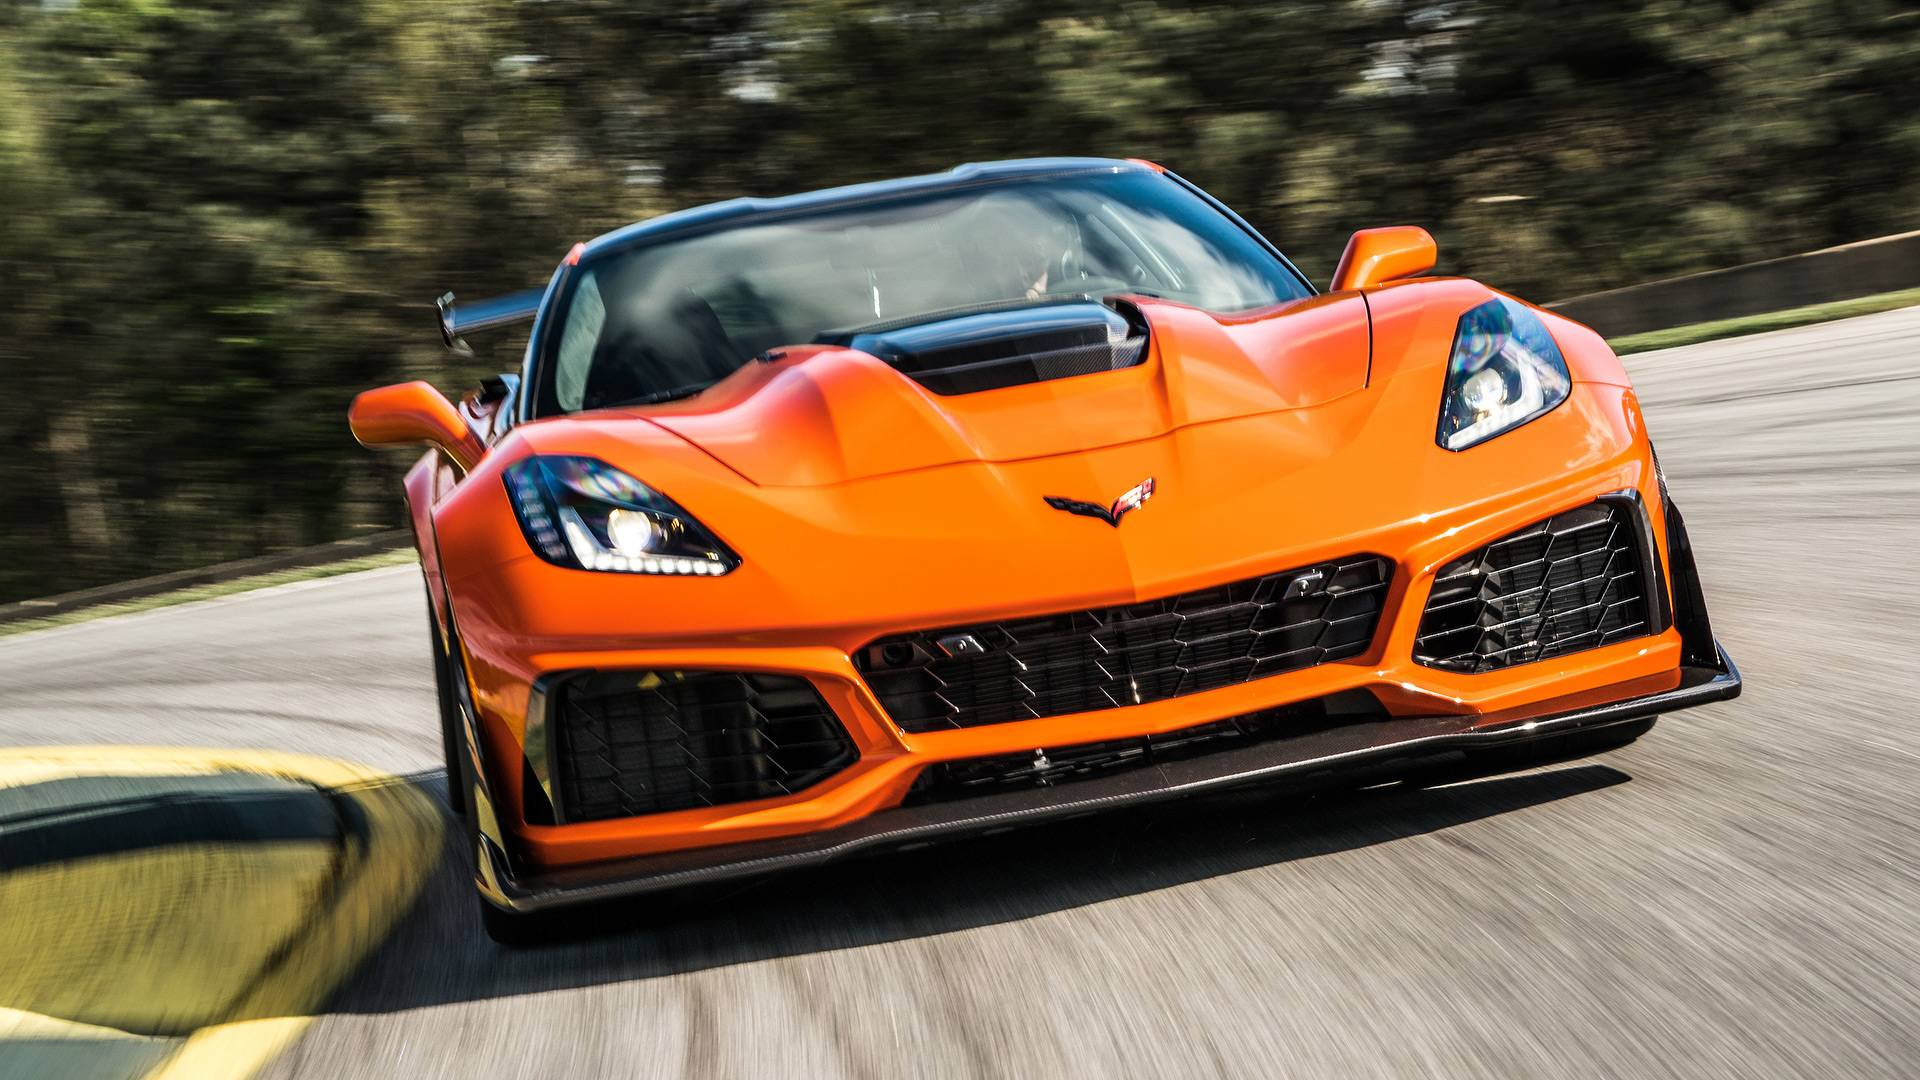 Car Brands With D >> 2019 Chevrolet Corvette ZR-1 - DX Reference Room - DiecastXchange.com Diecast Cars Forums